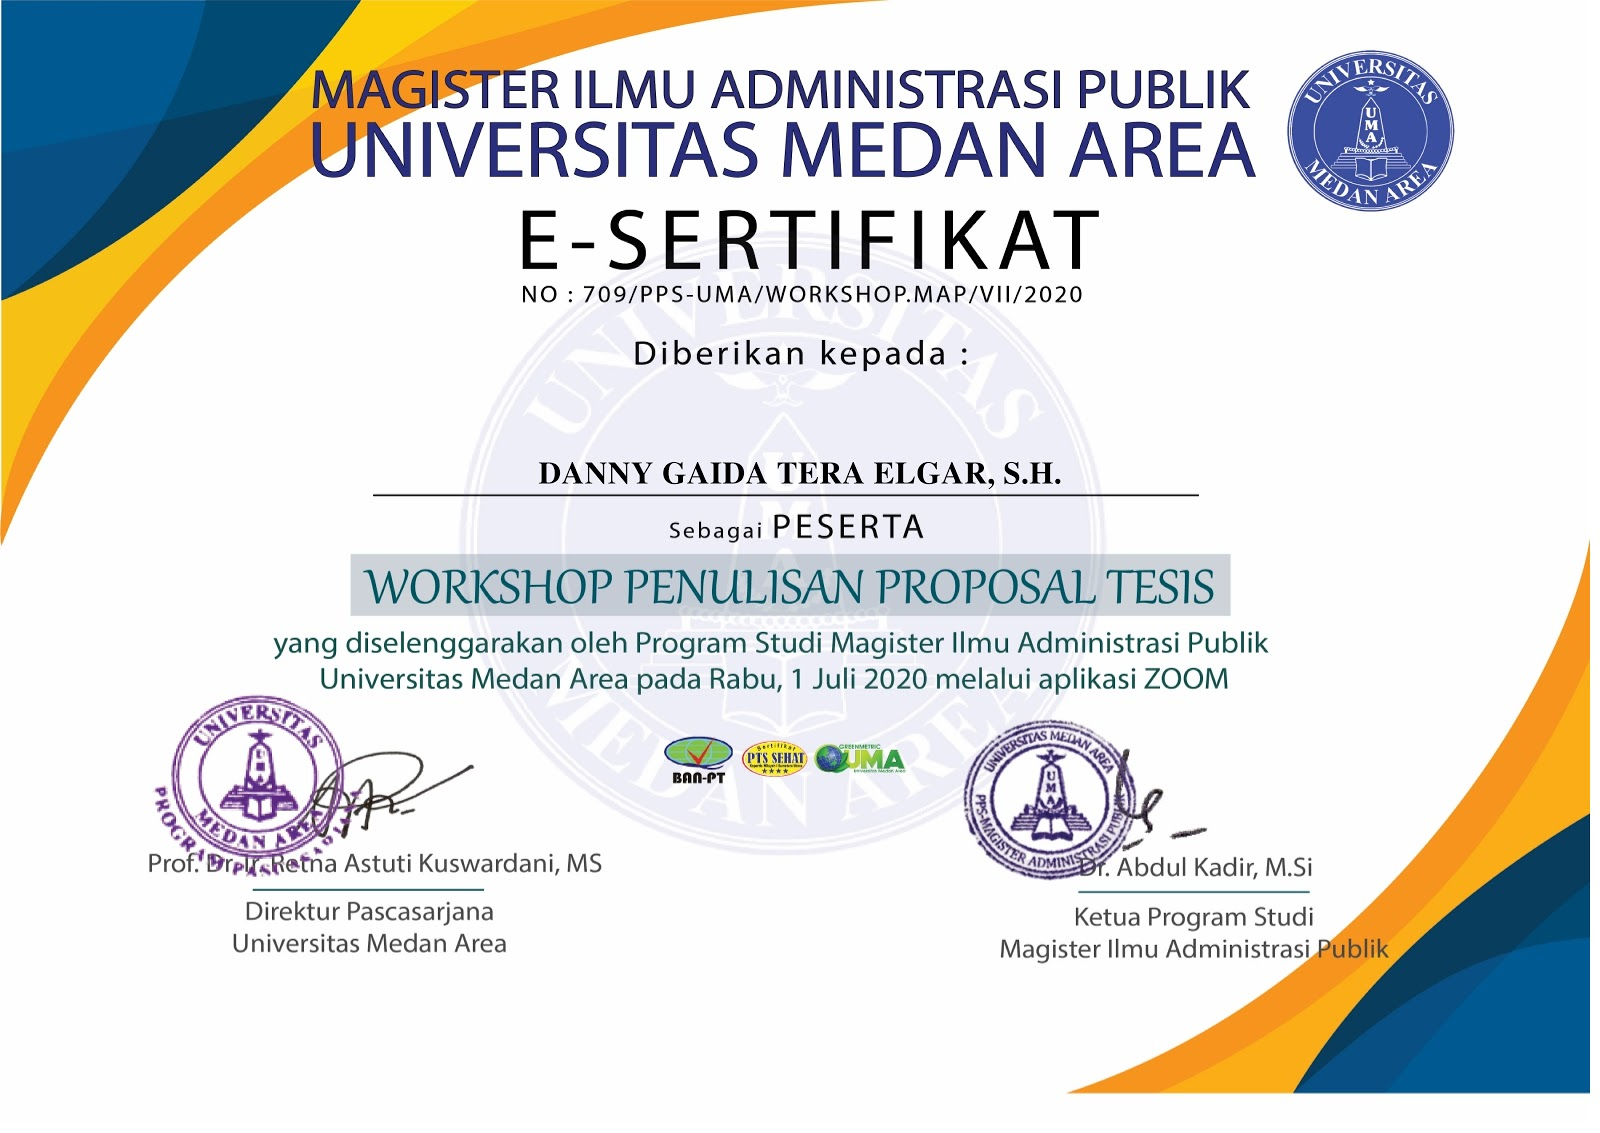 Sertifikat Workshop Penulisan Proposal Tesis | Program Studi Magister (S2) Ilmu Administrasi Publik Universitas Medan Area (UMA) | Rabu, 1 Juli 2020